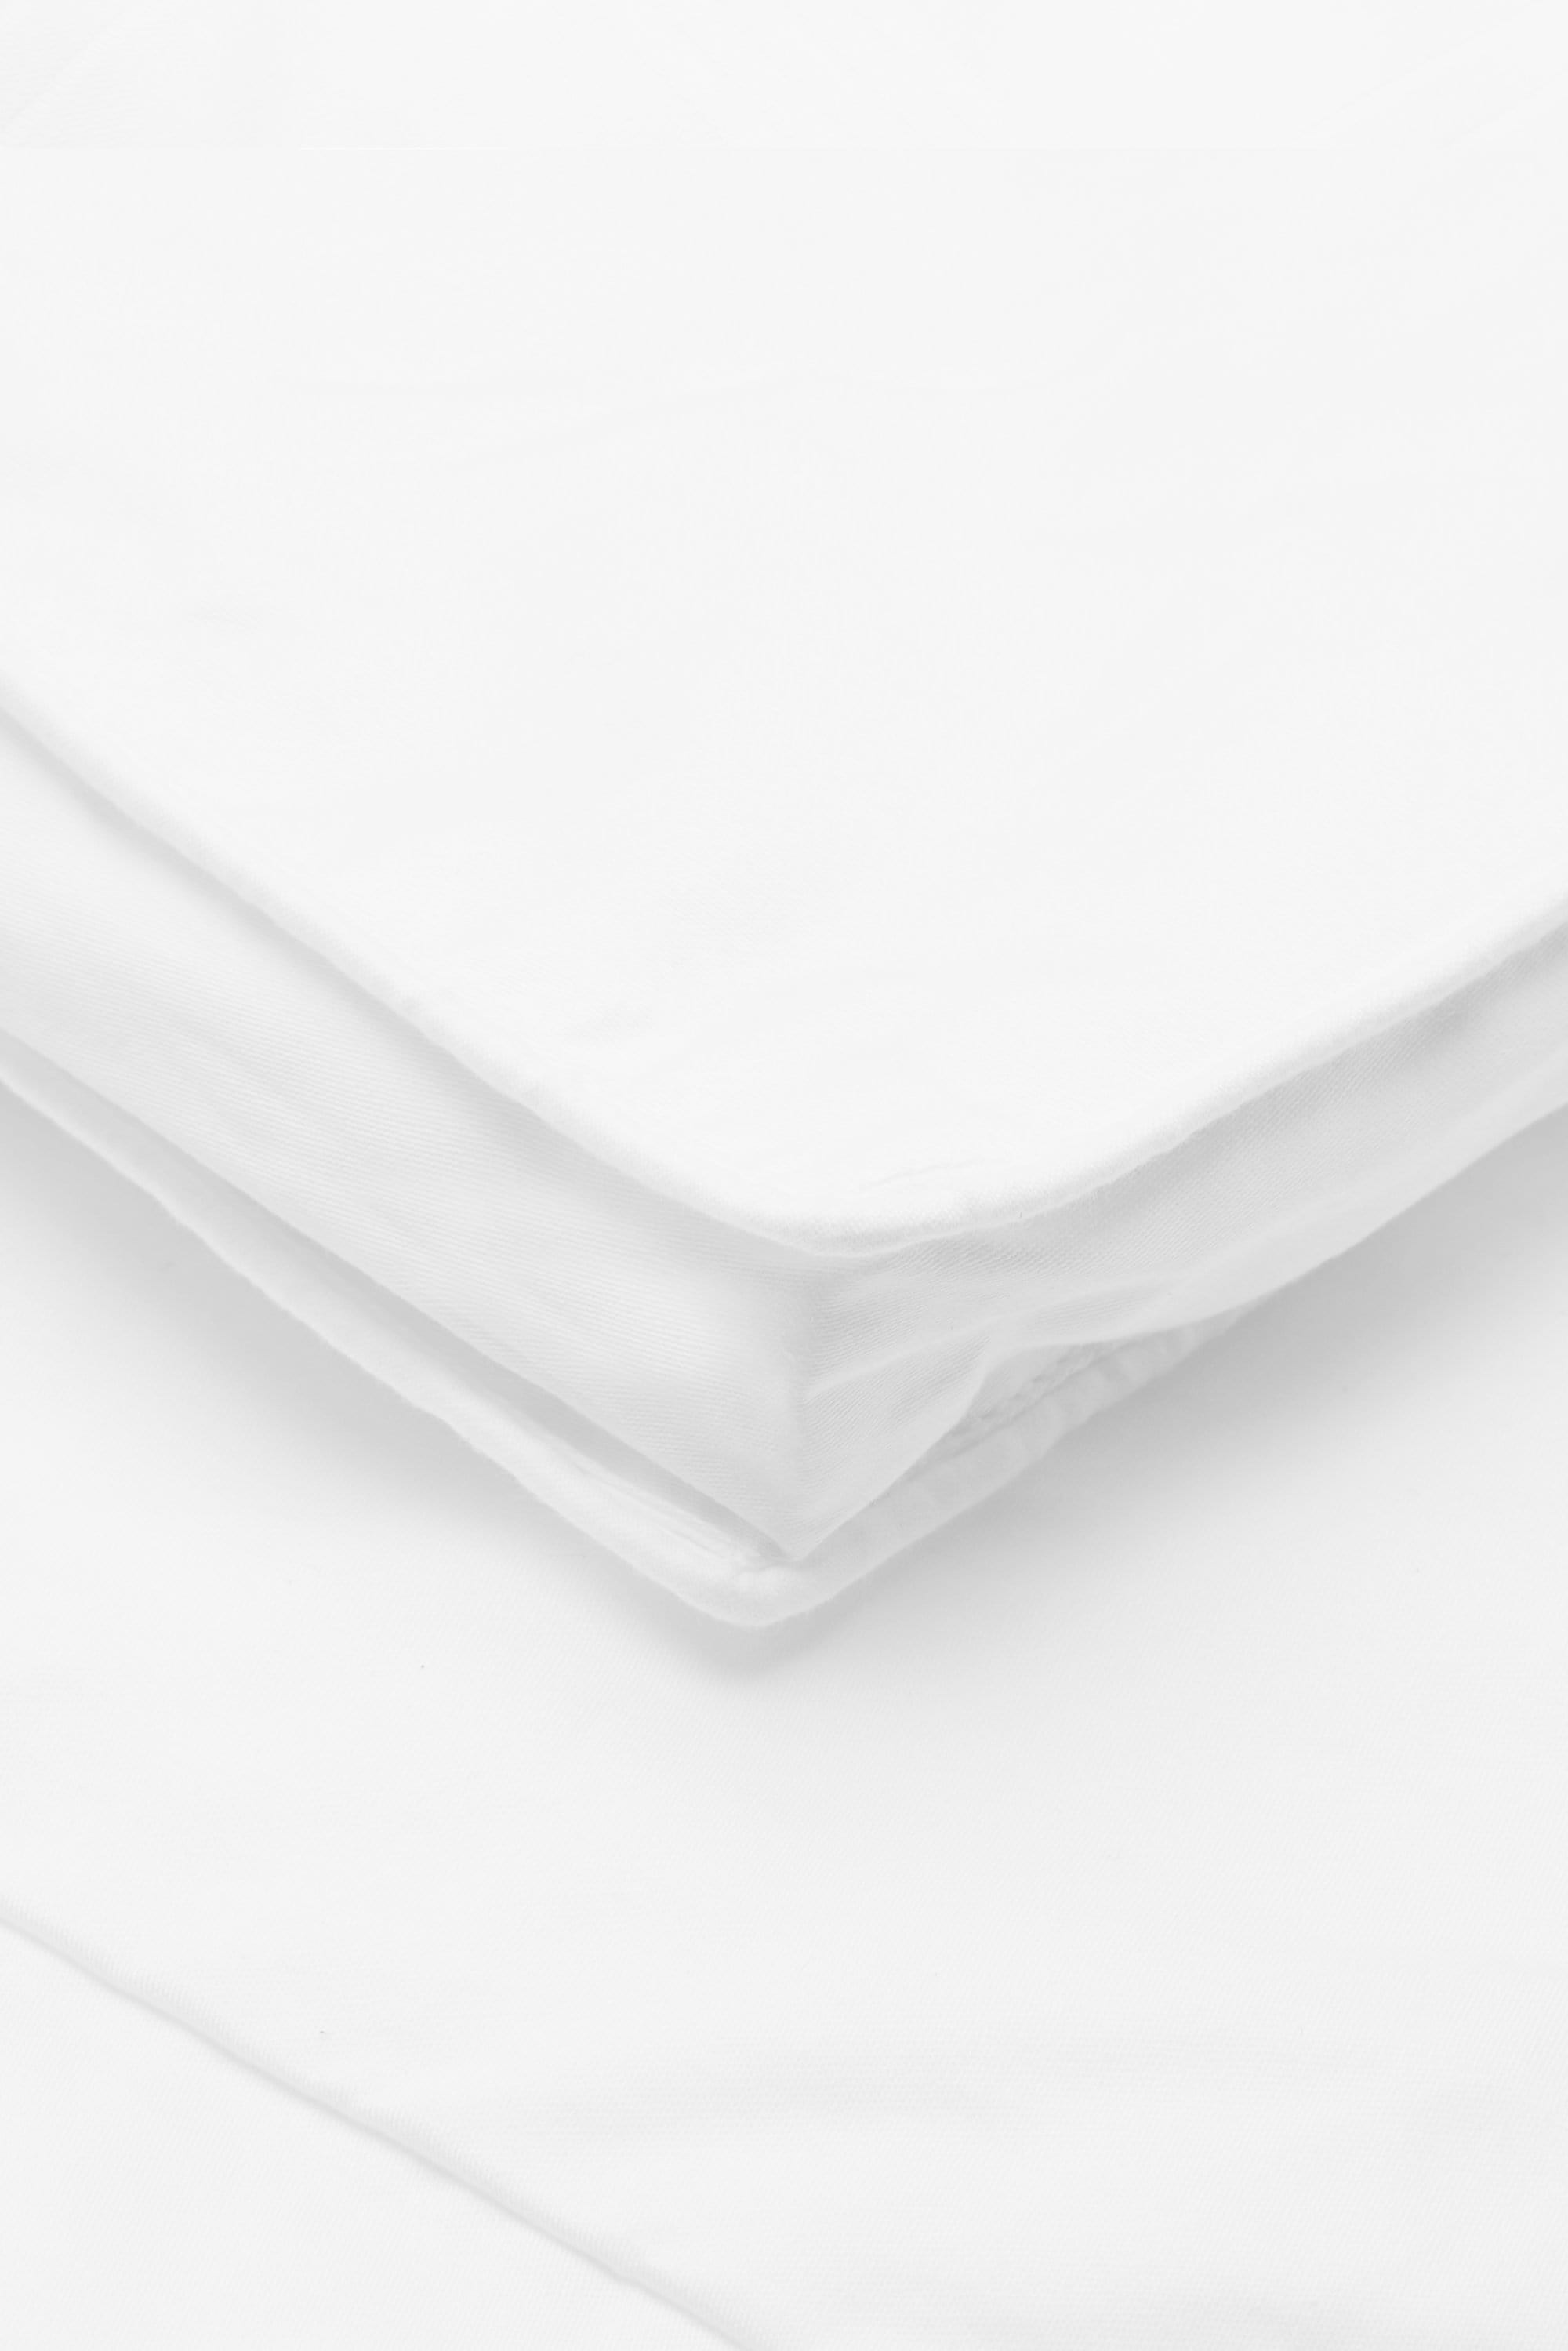 Downia Cosy Comfort White Goose Down & Feather Quilt